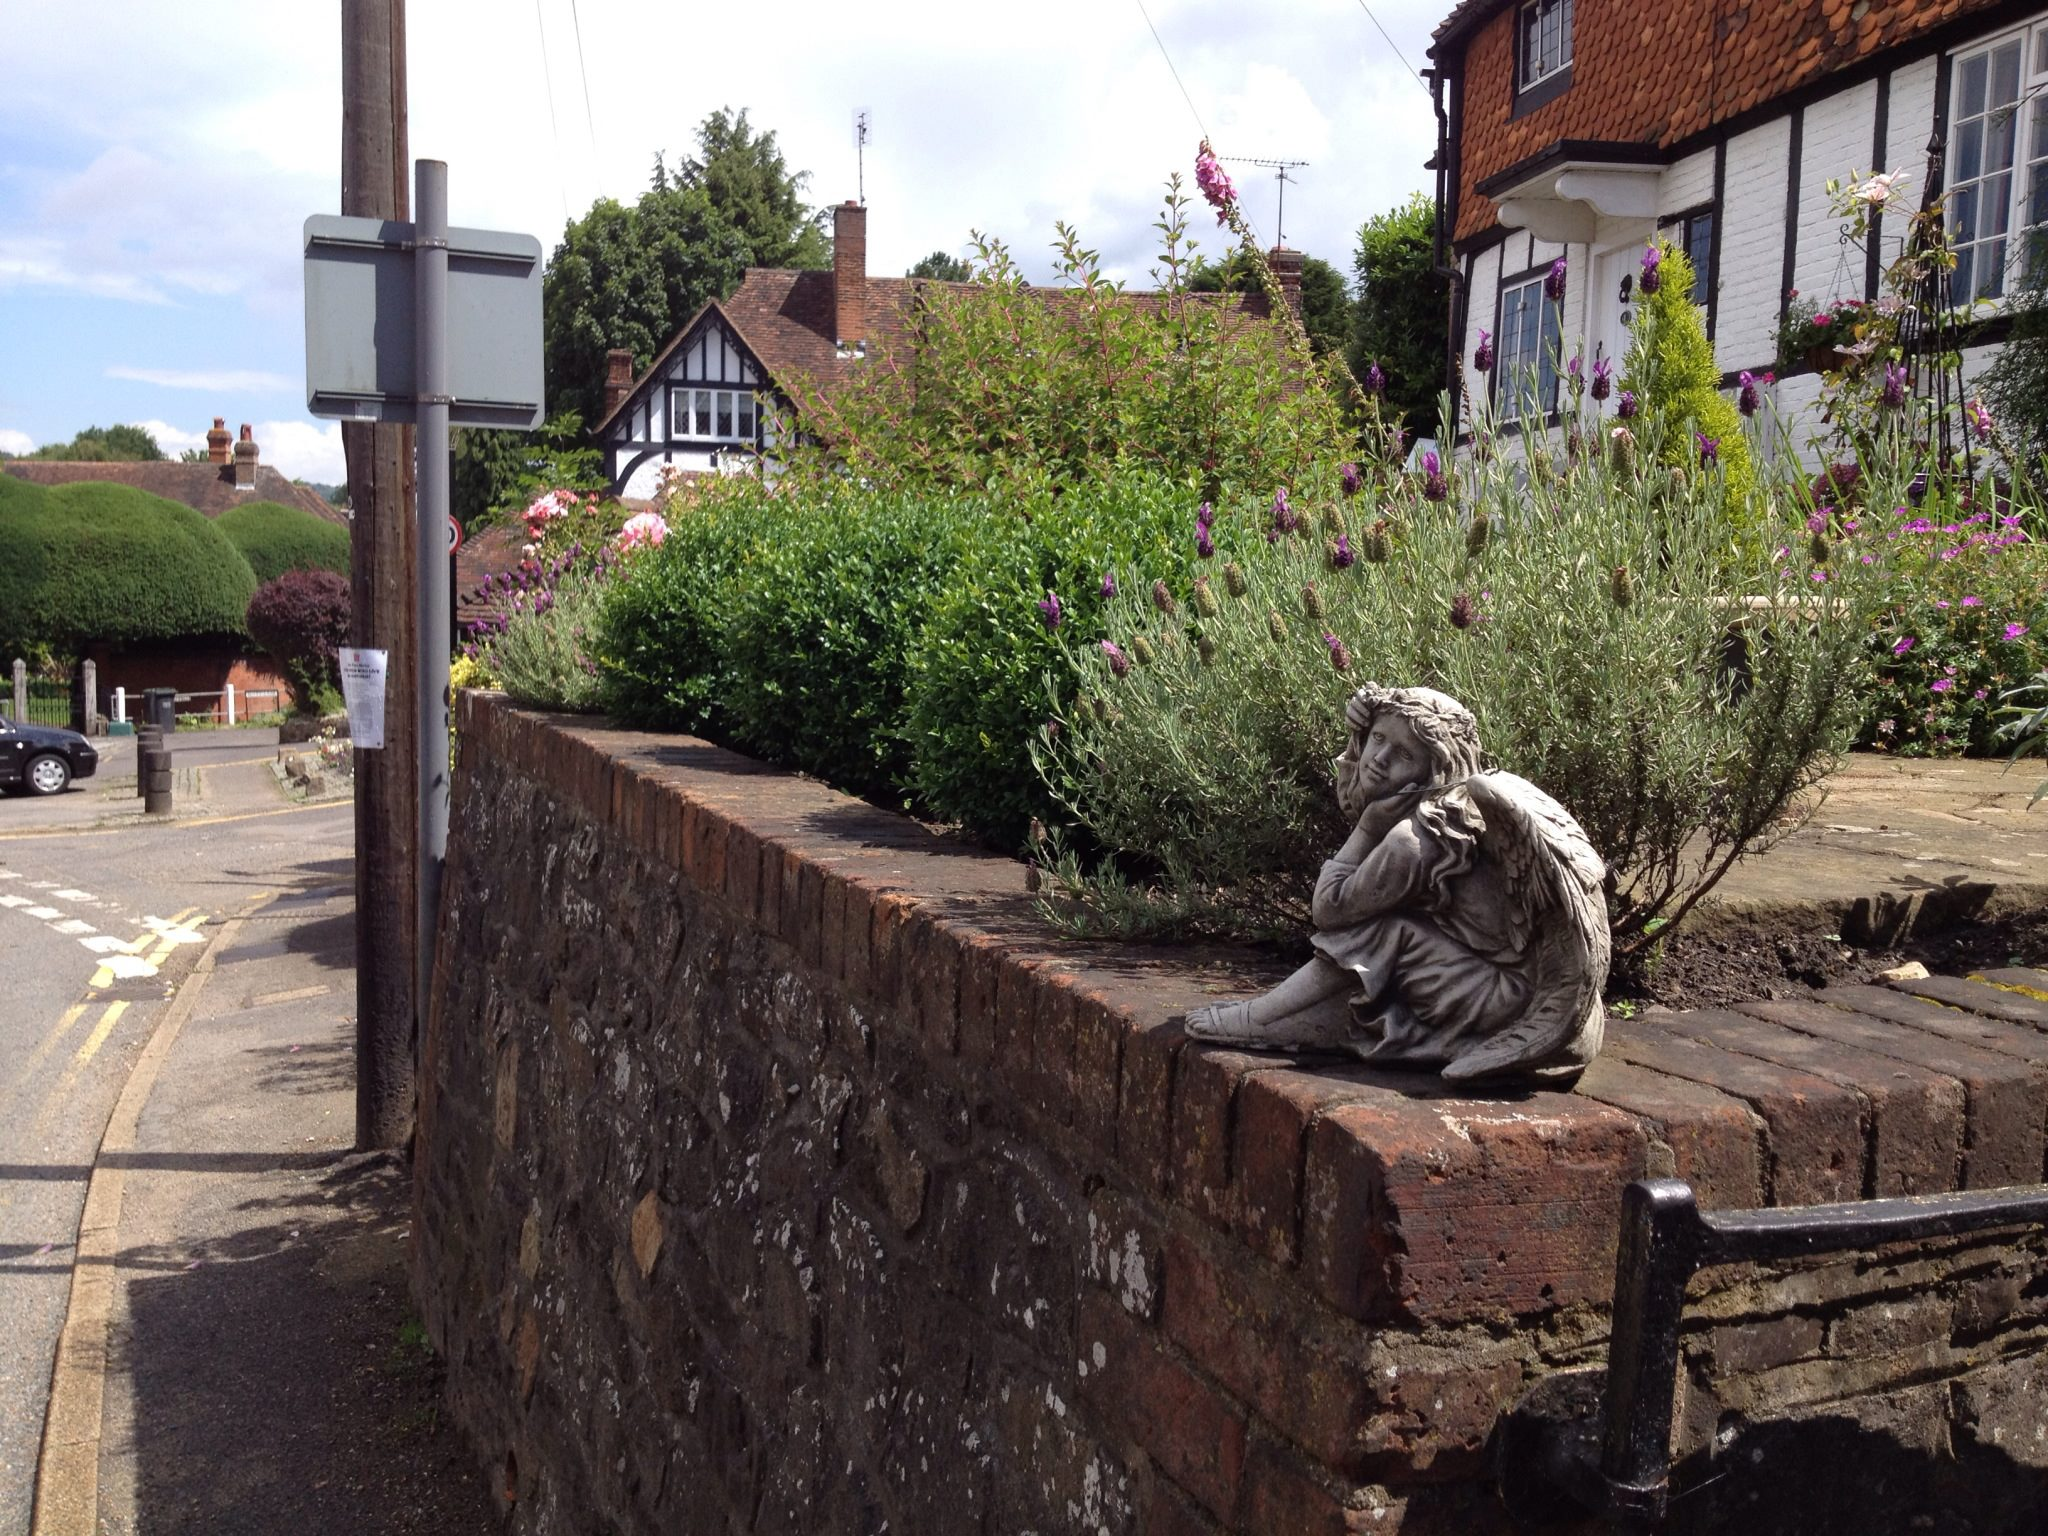 Ightham Village scene